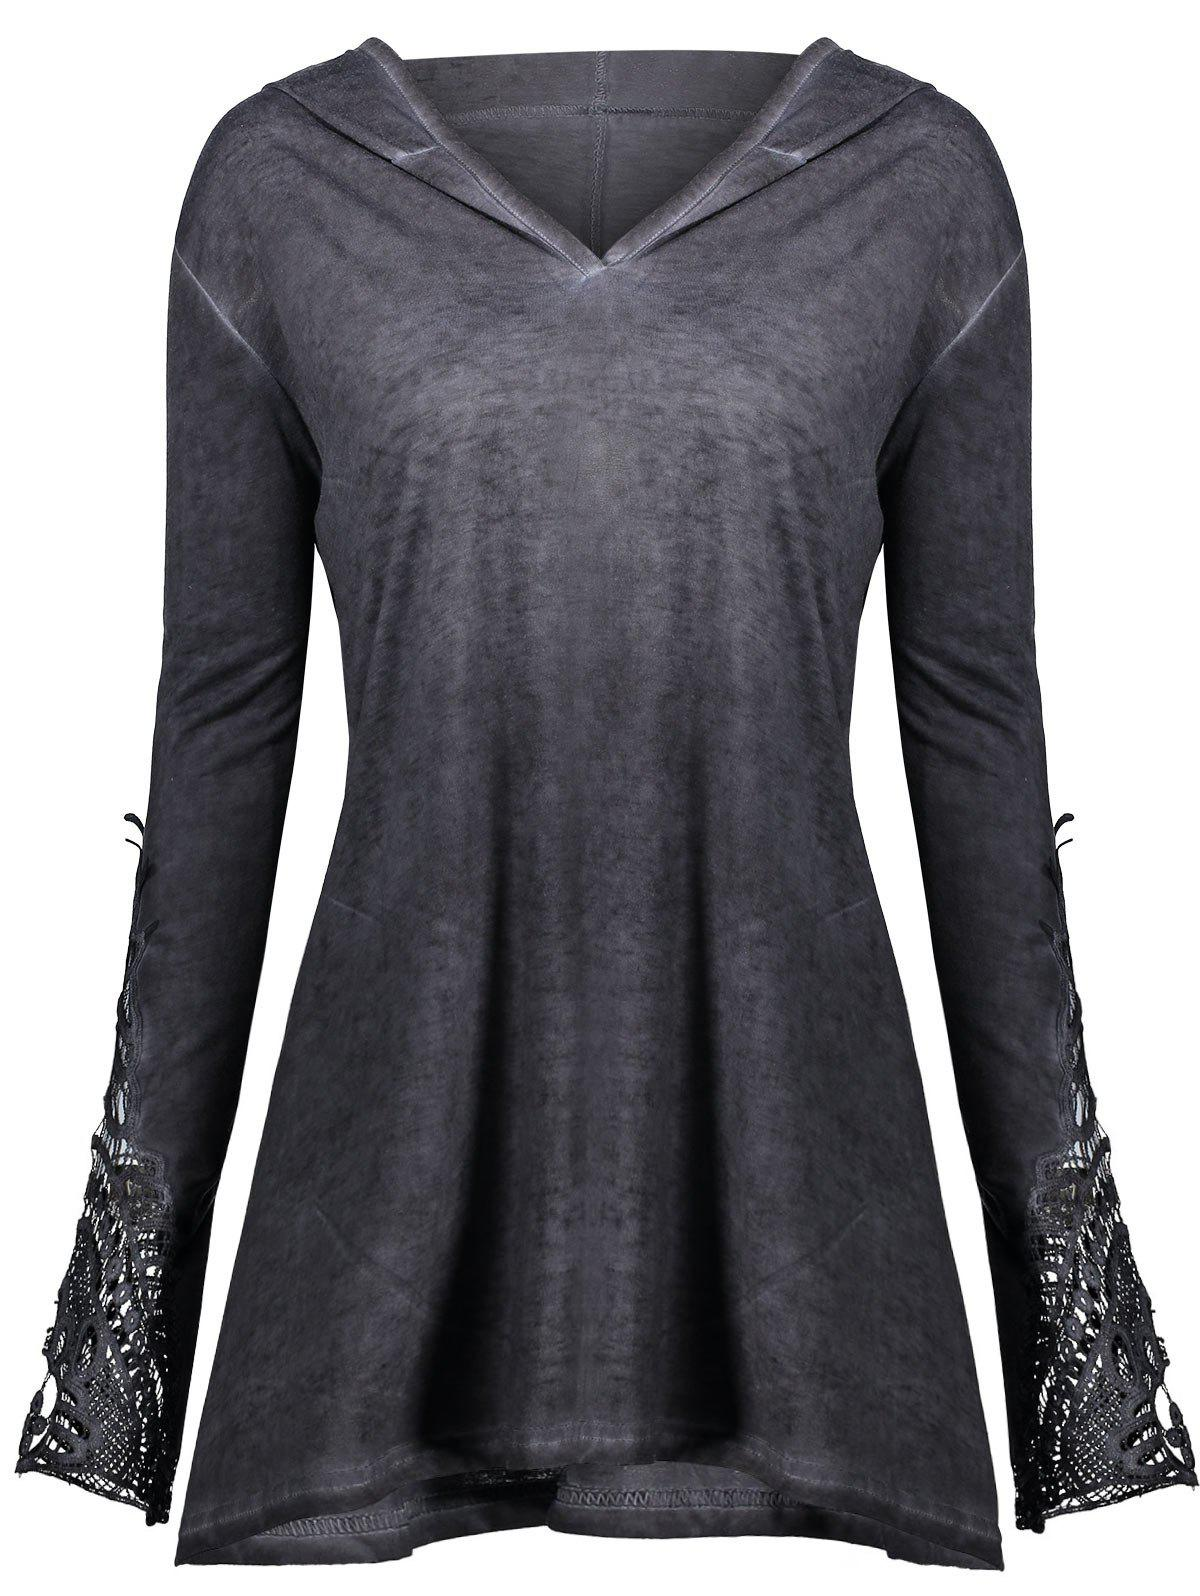 Crochet Insert Plus Size HoodieWOMEN<br><br>Size: 4XL; Color: DARK GRAY; Material: Polyester,Spandex; Shirt Length: Regular; Sleeve Length: Full; Style: Fashion; Pattern Style: Solid; Season: Fall,Spring; Weight: 0.4200kg; Package Contents: 1 x Hoodie;